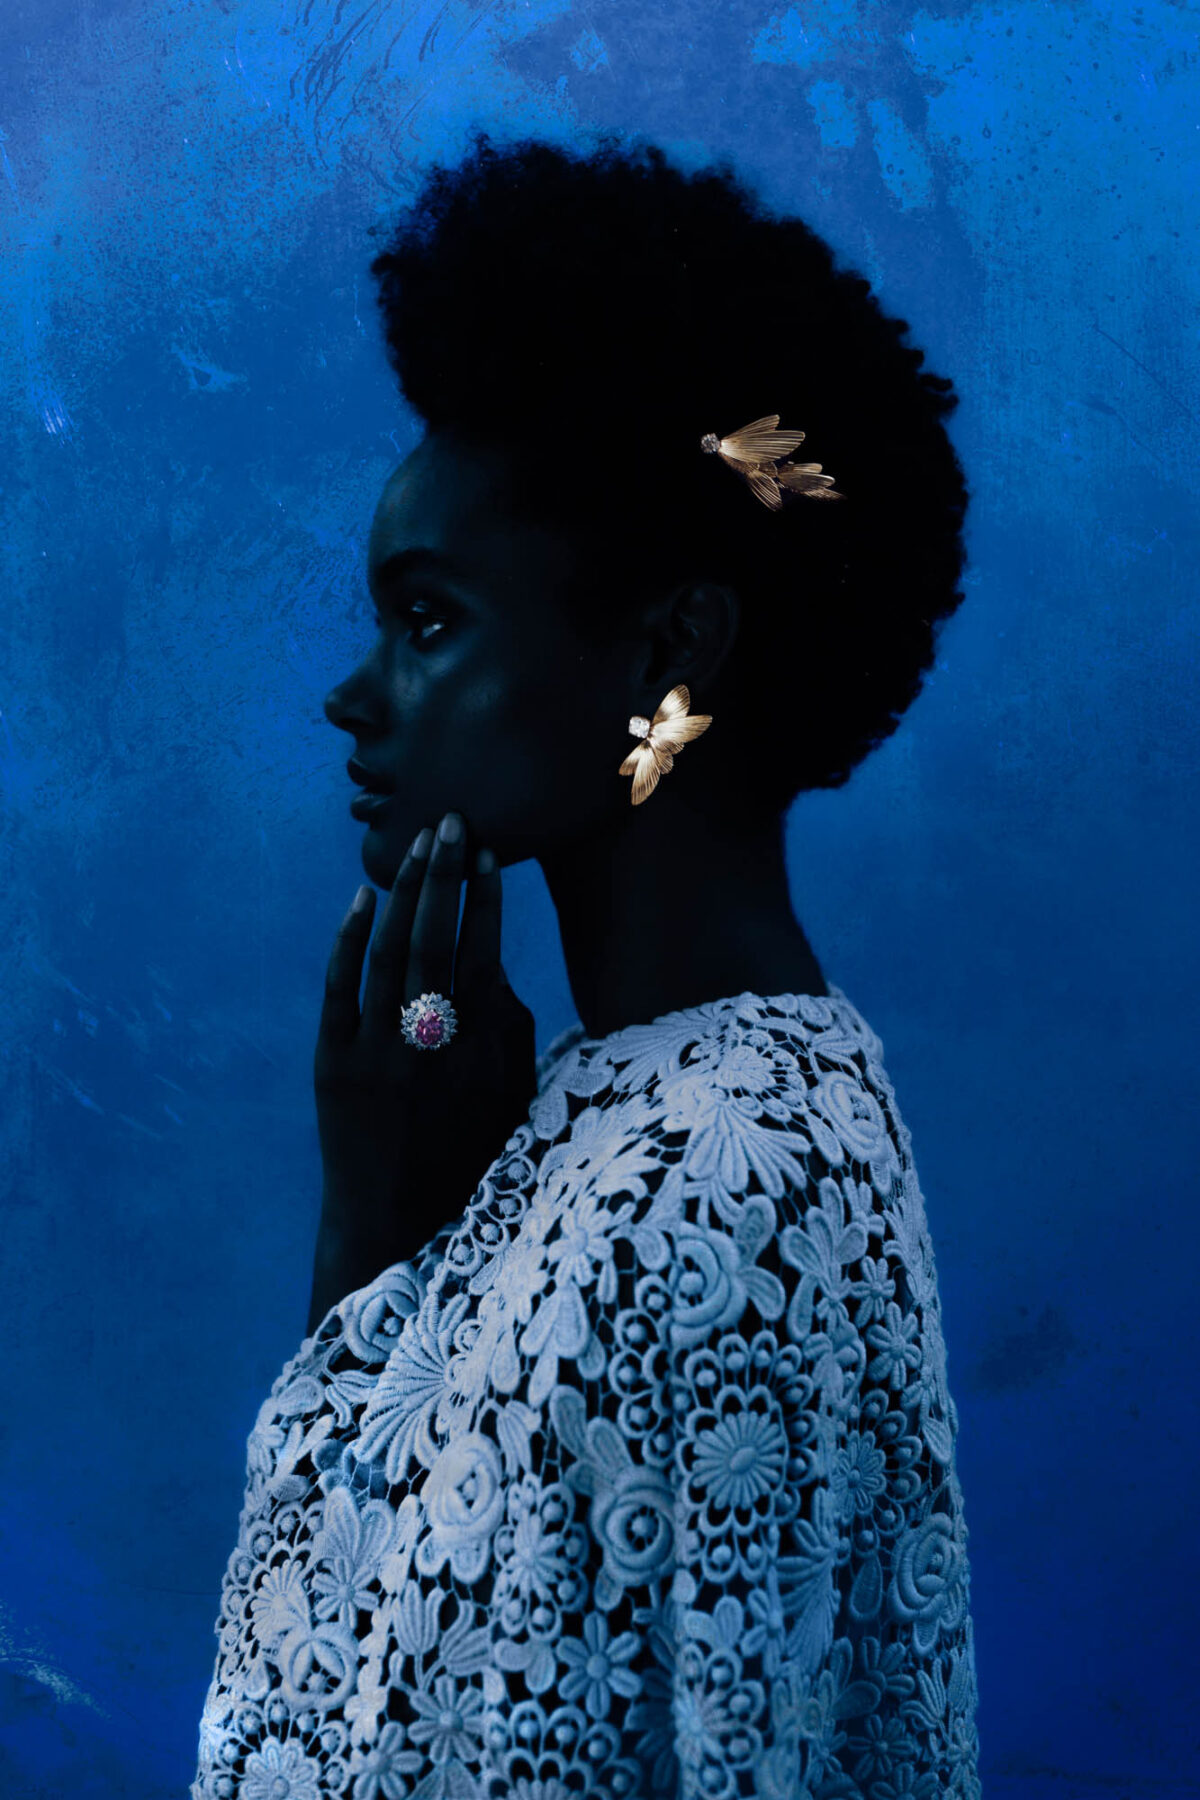 Interview: Photographer Shawn Theodore's Night Stars Exhibition Explores Vanishing Black Spaces by Kendra Walker